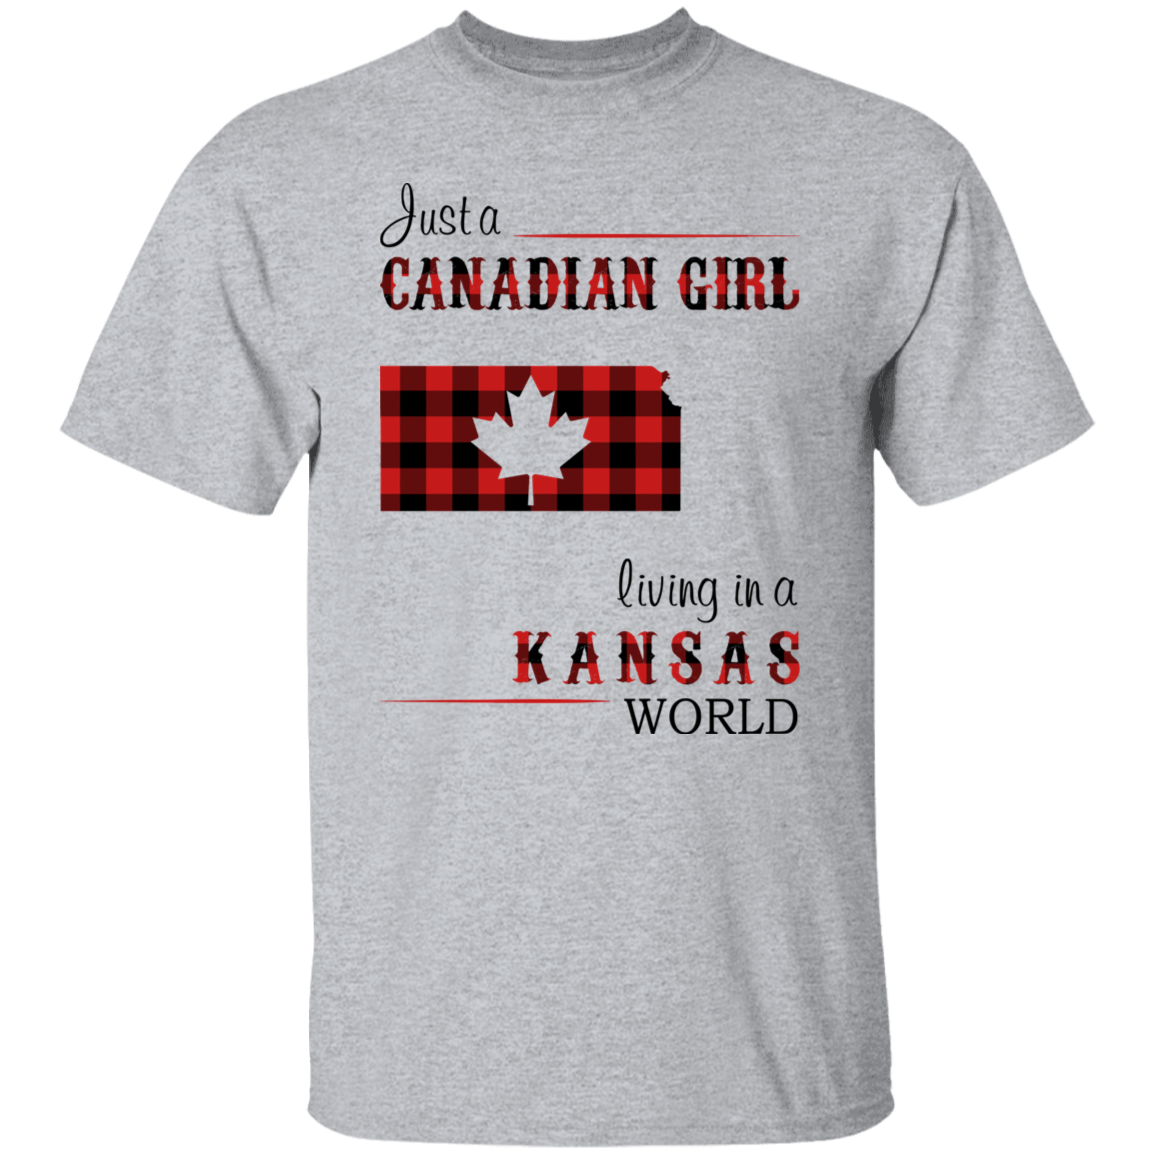 JUST A CANADIAN GIRL LIVING IN A KANSAS WORLD